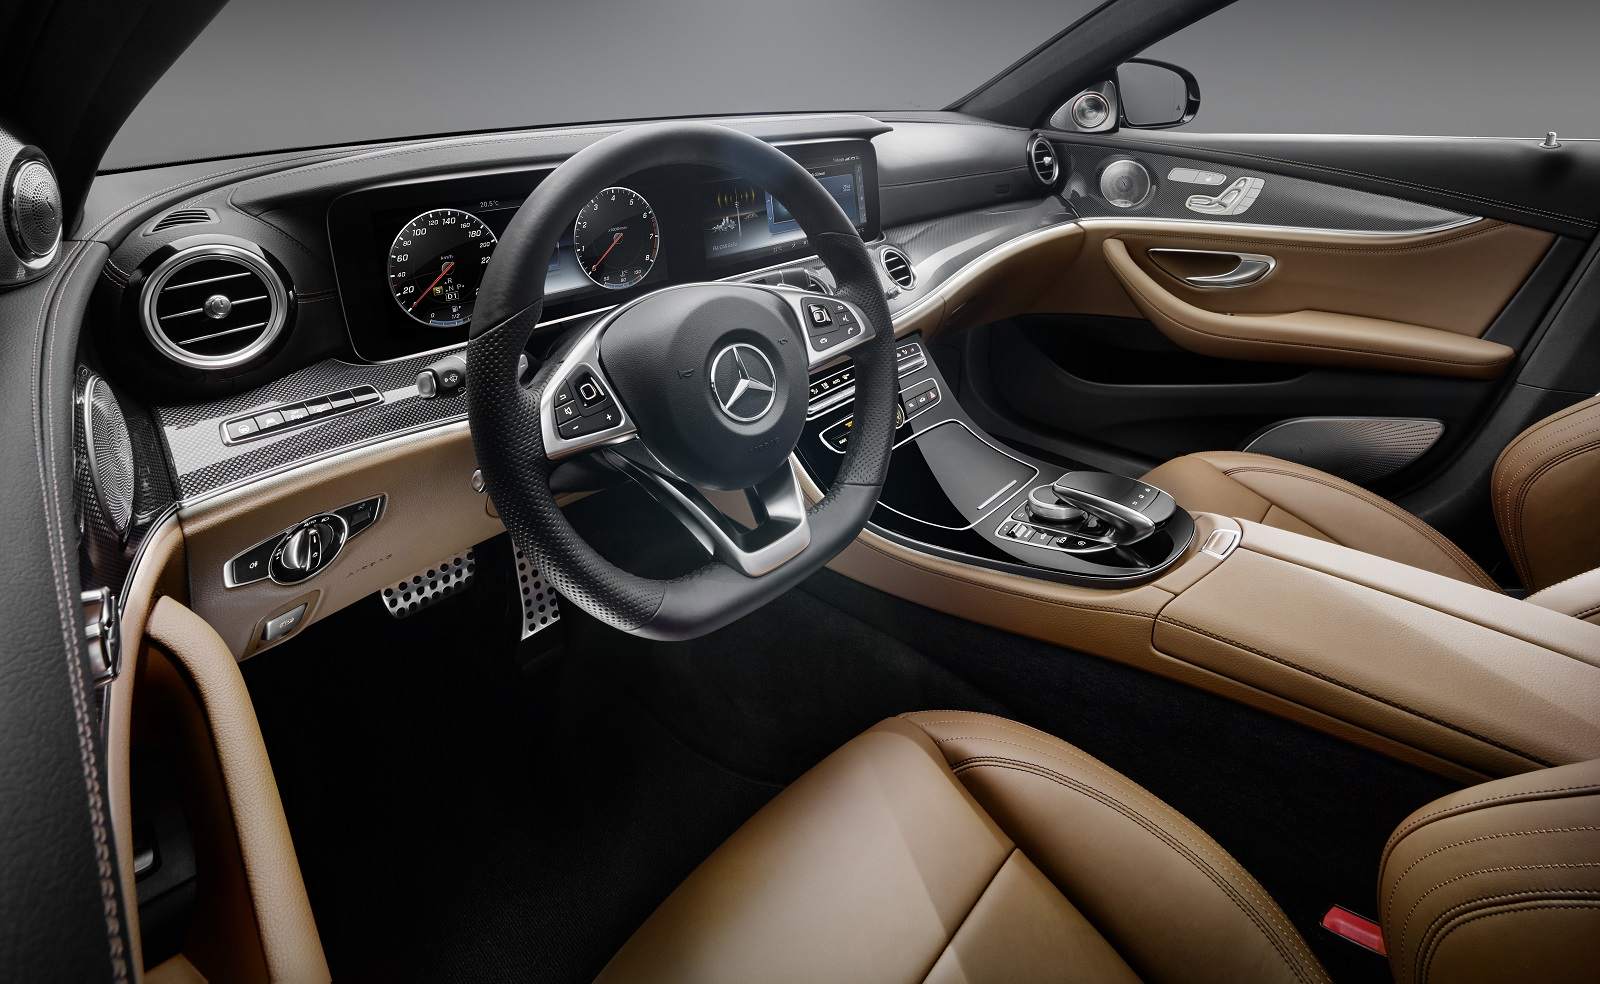 2017 Mercedes Benz E Class Interior Revealed All Glass